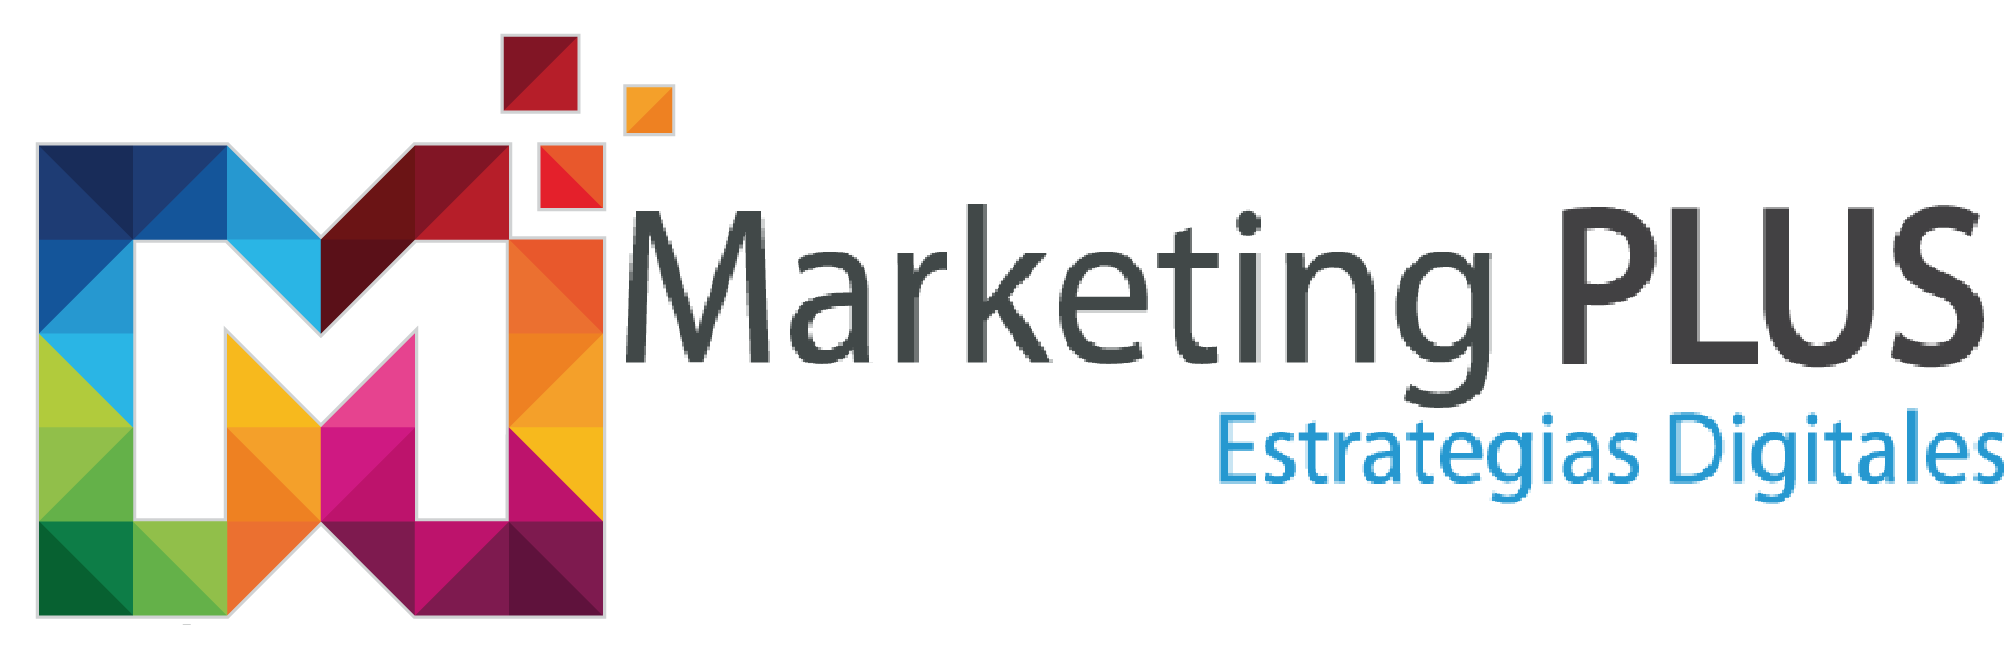 Marketing Plus